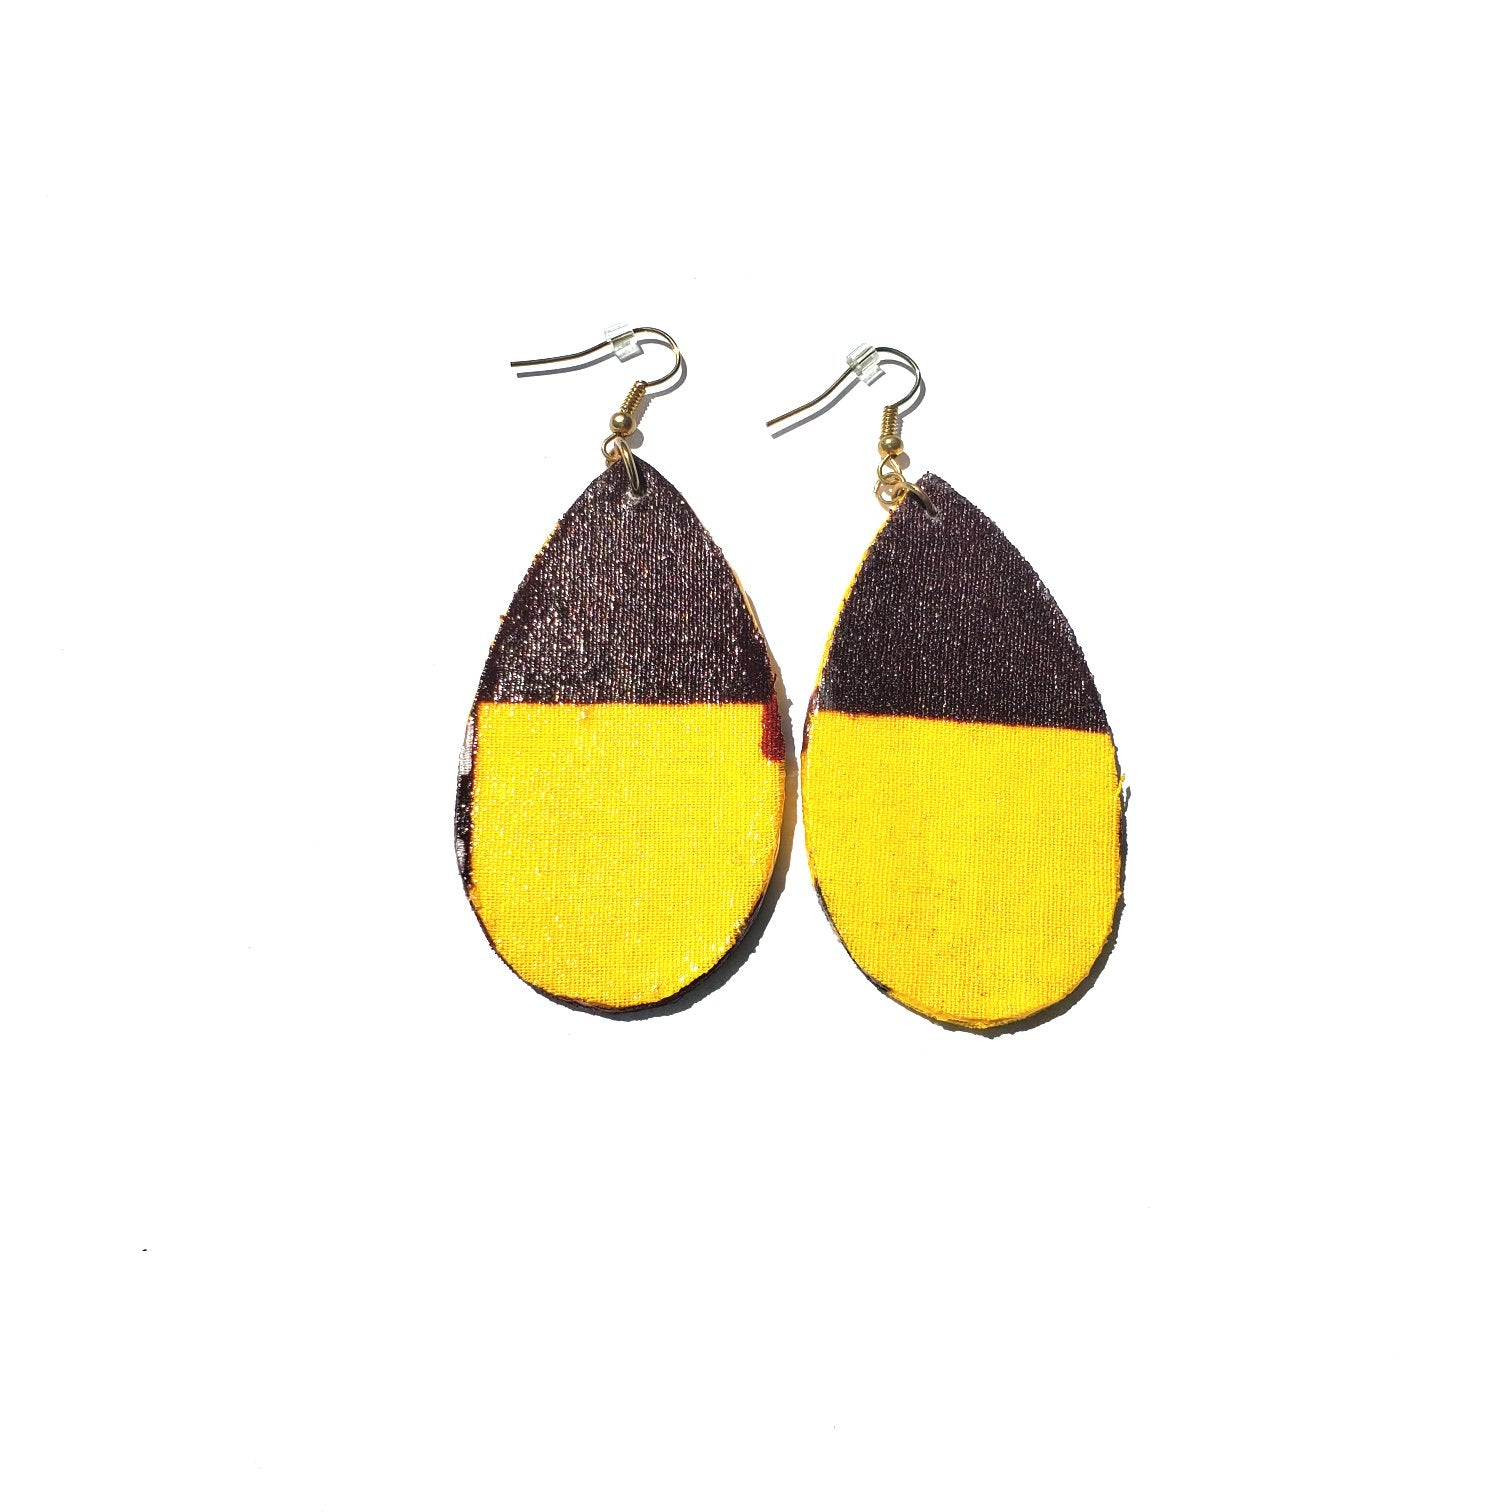 African/ Ankara Tear Drop Earrings(hooked) - Yellow/Brown Print